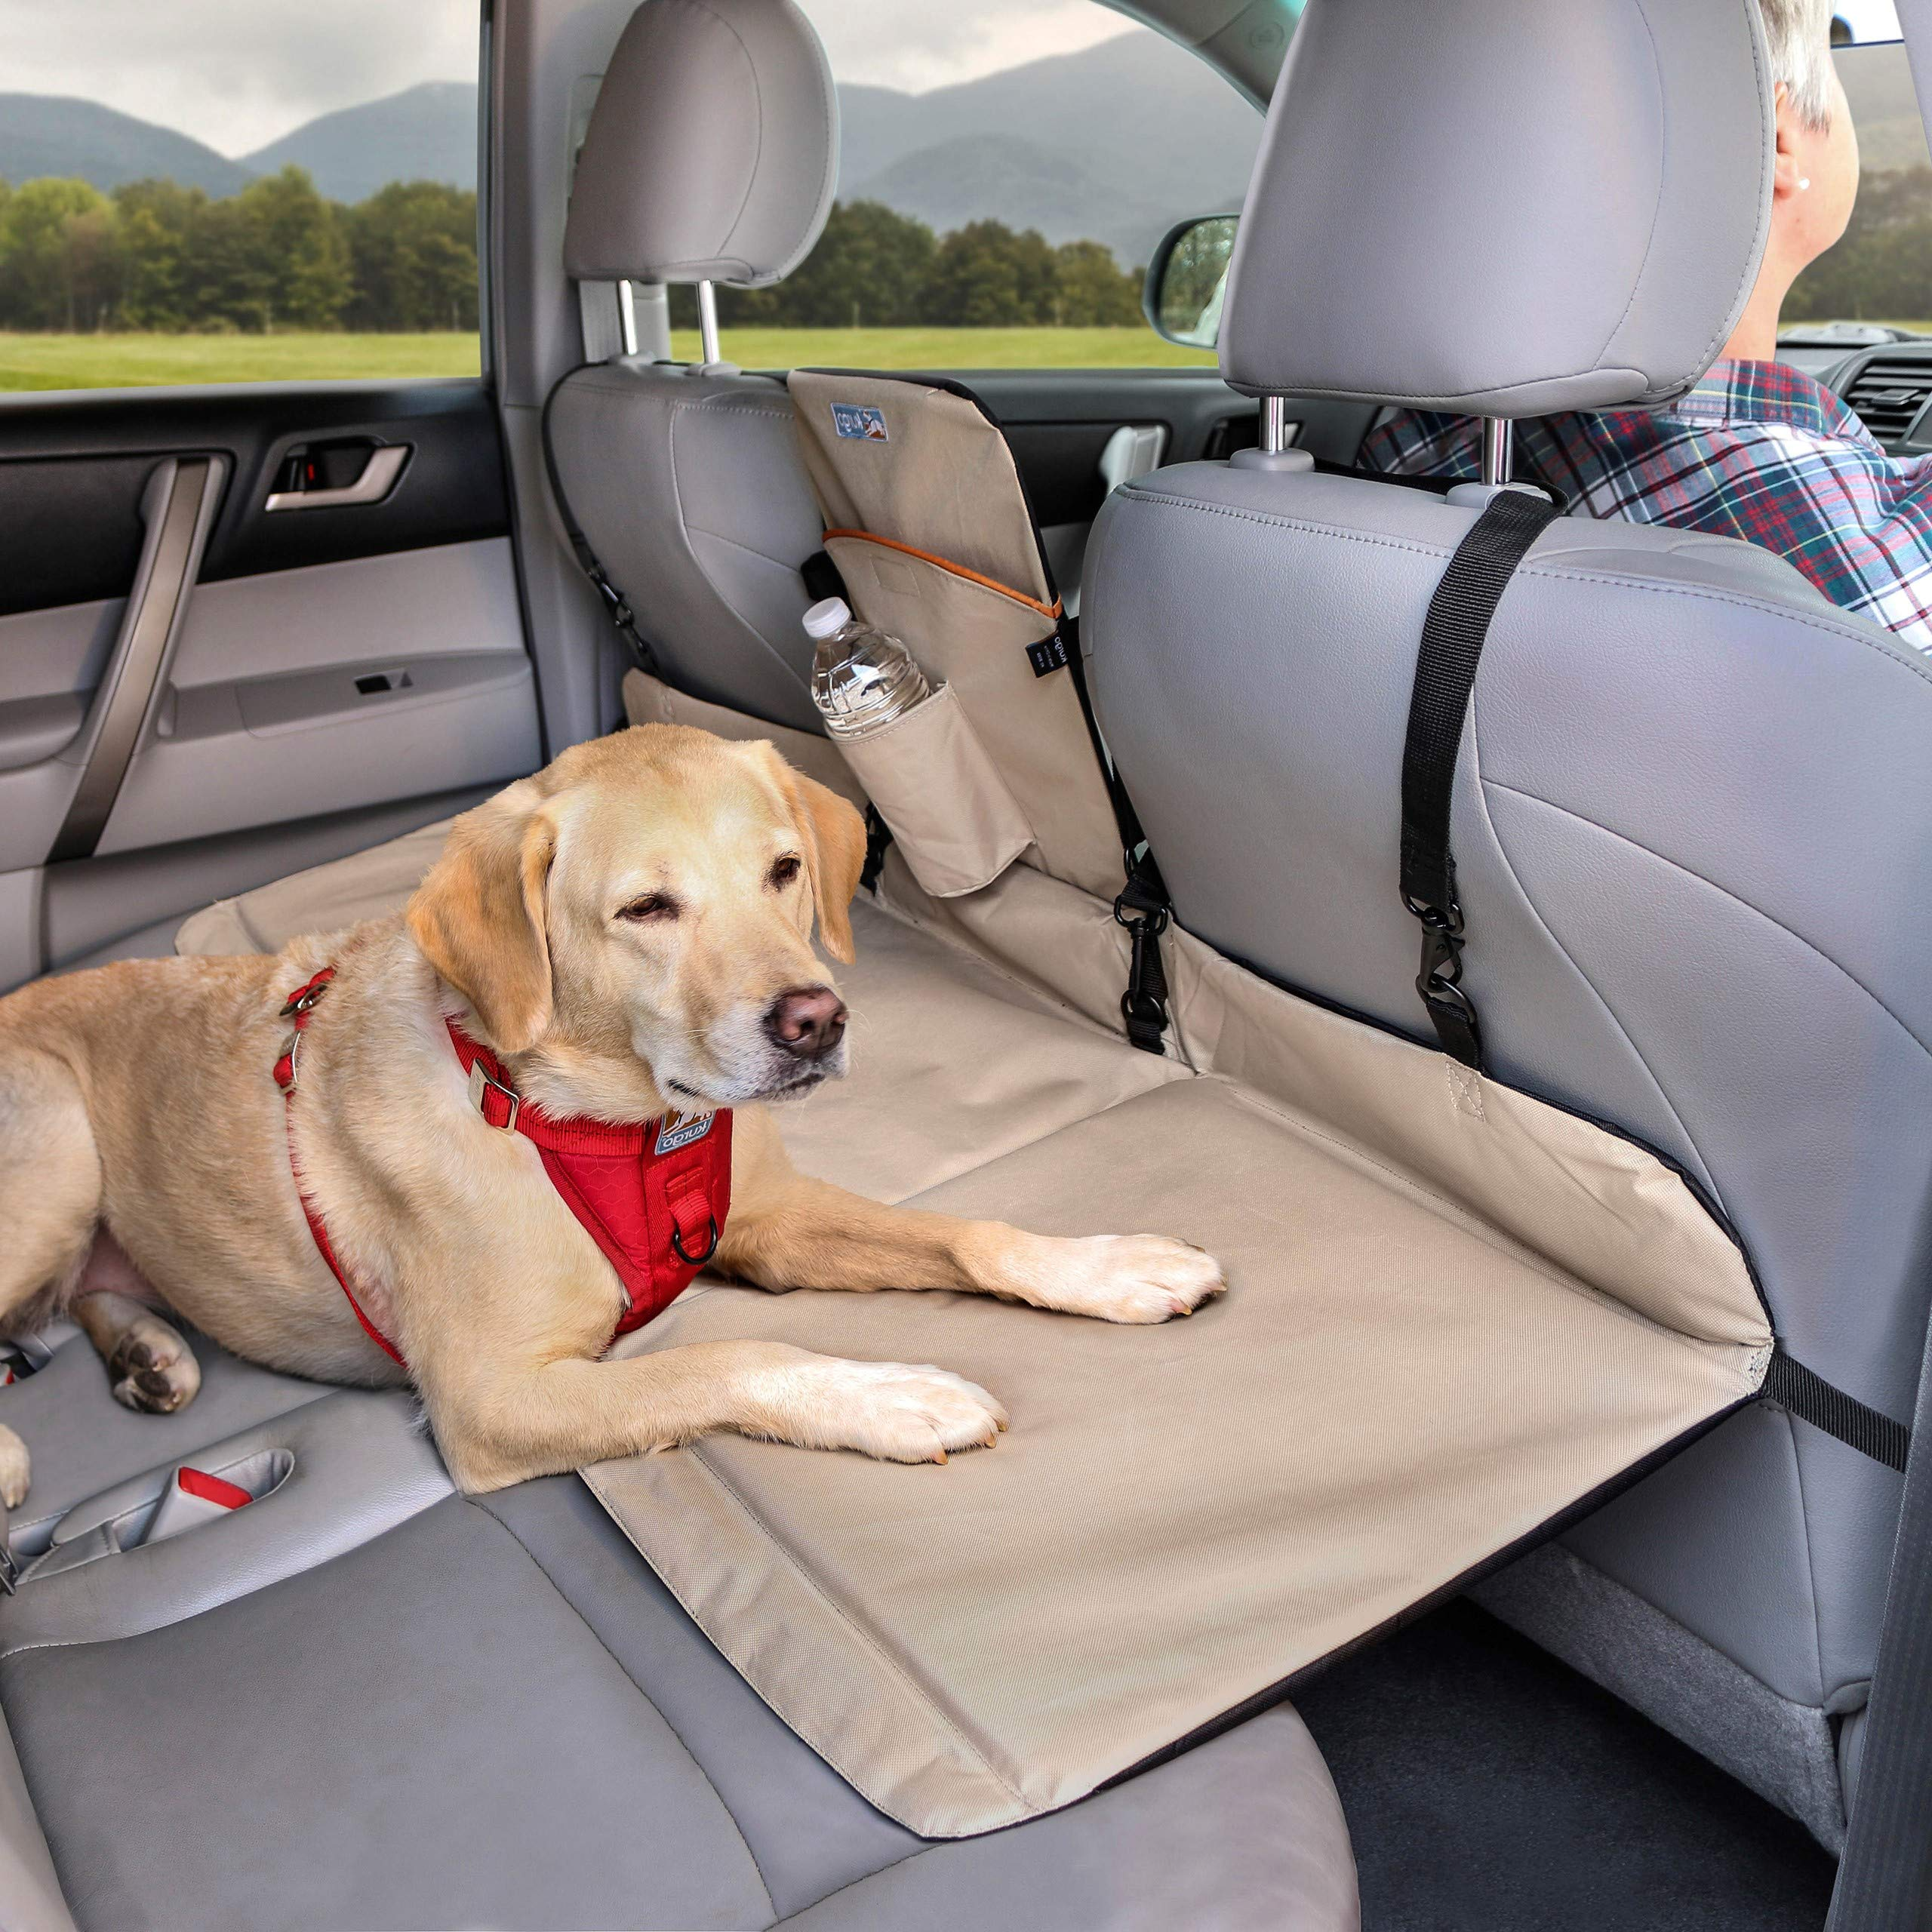 Kurgo Dog Backseat Bridge Car Extender | Seat Bridge for Dogs | Padded Pet Car Barrier | Reversible | Water Resistant | Universal Fit | Cup Holder & Pocket | Up to 100 lbs | Black / Hampton Sand Khaki by Kurgo